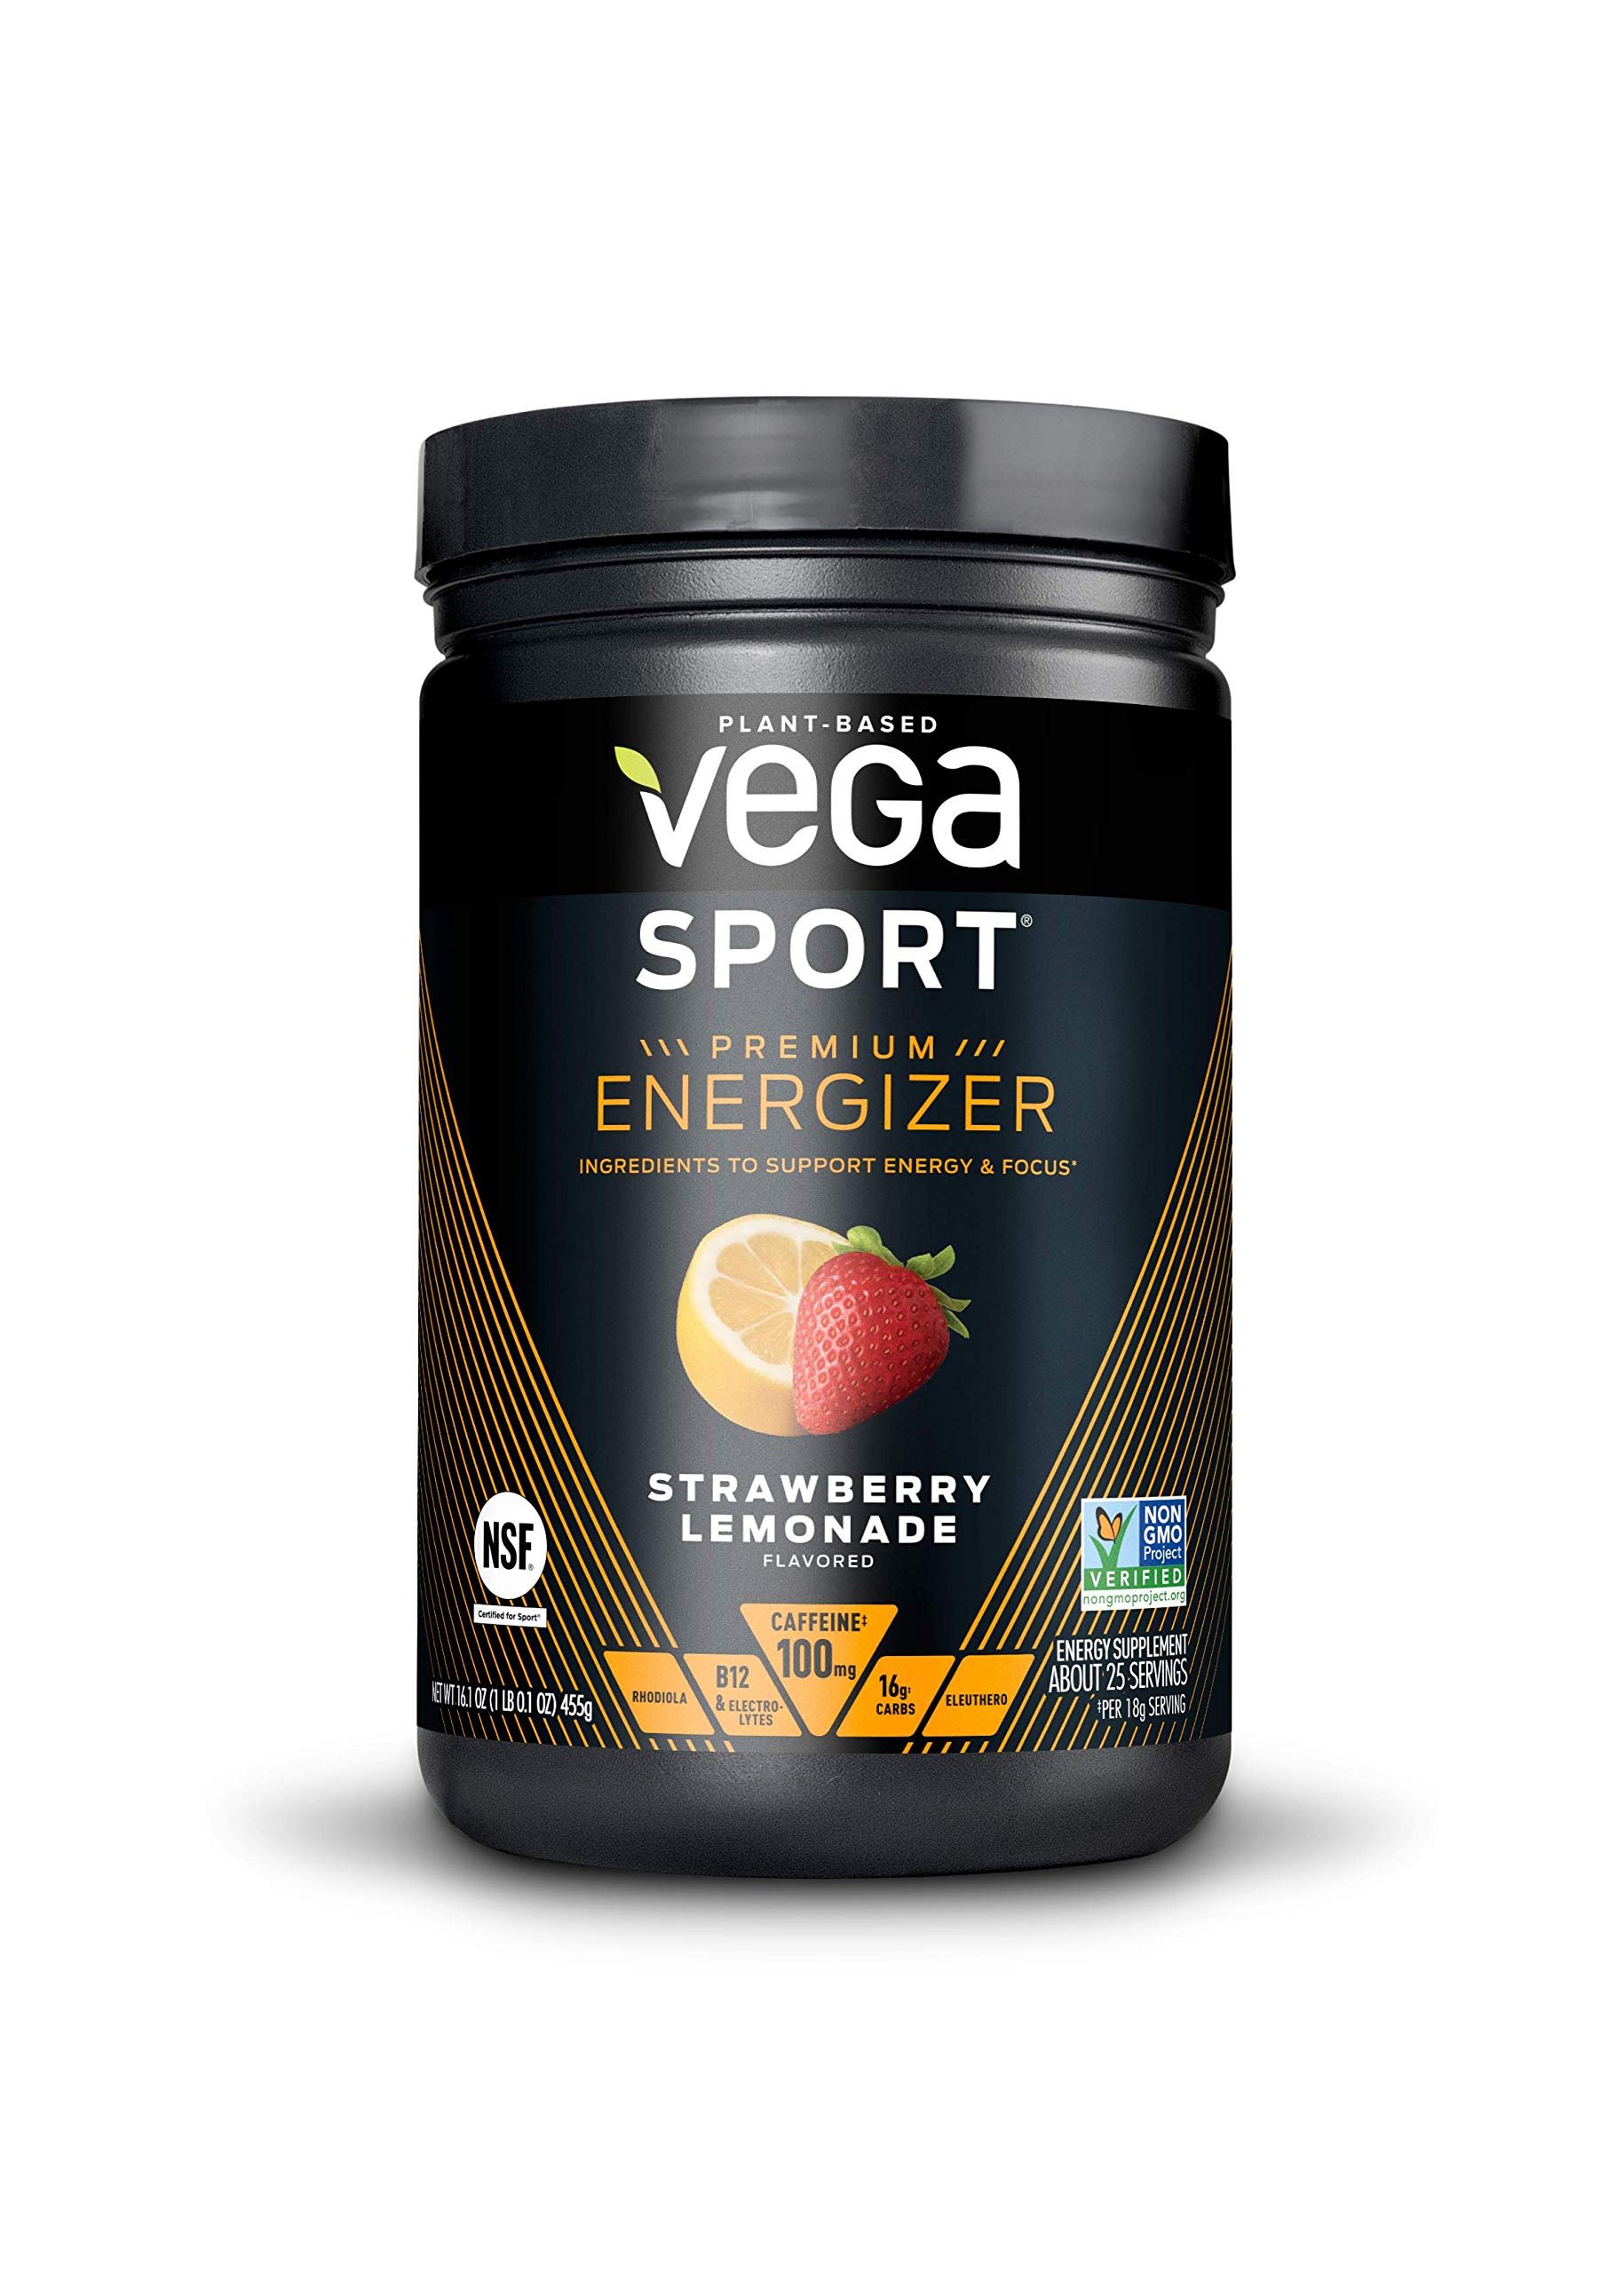 New Vega Sport Premium Energizer Strawberry Lemonade (25 Servings, 16.1 oz) - Vegan, Gluten Free, All Natural, Pre Workout Powder, Non GMO (Packaging may vary) by VEGA